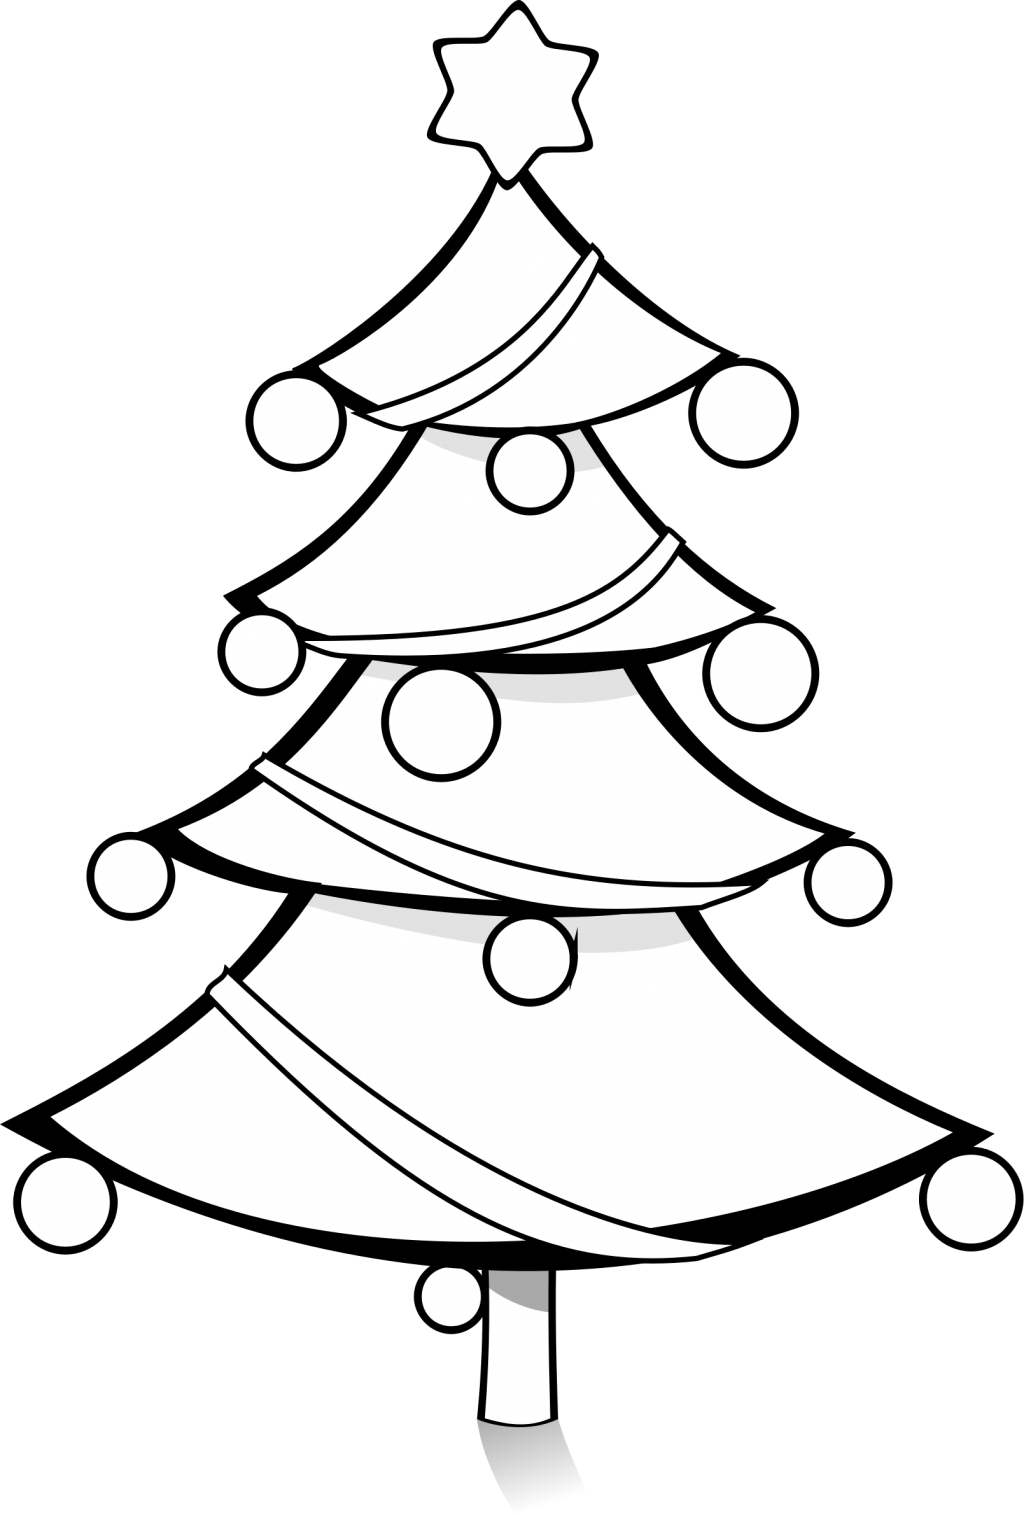 Library of christmas tree black and white picture library.